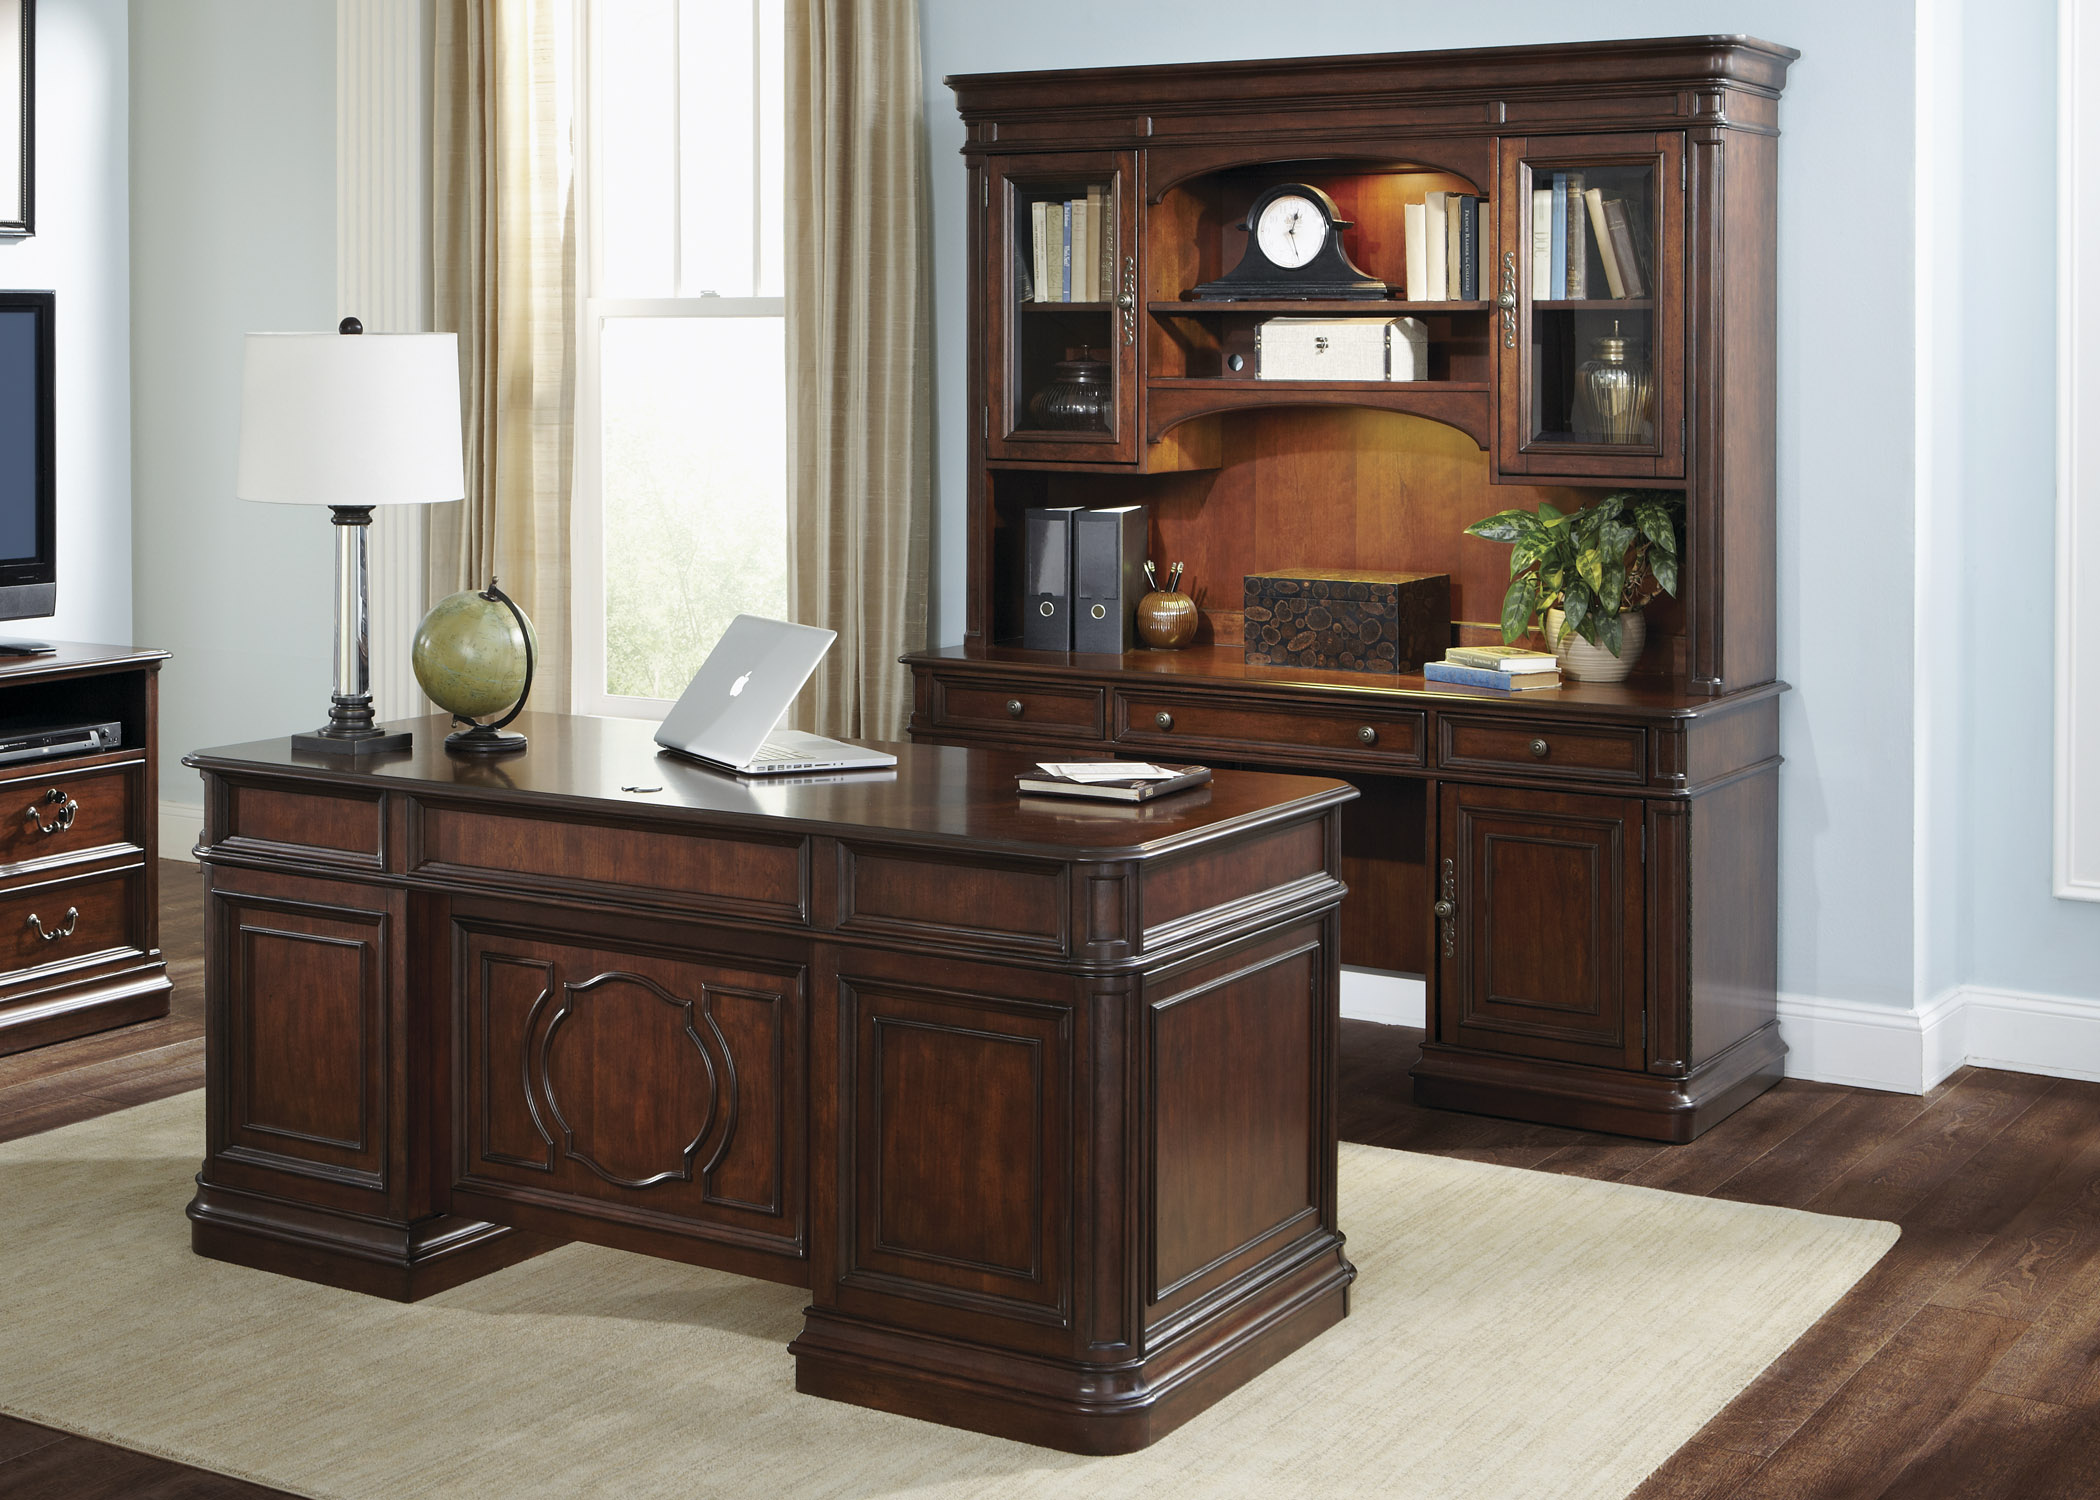 Liberty Furniture Brayton Manor Jr Executive Jr Executive Set  - Item Number: 273-HOJ-5JES